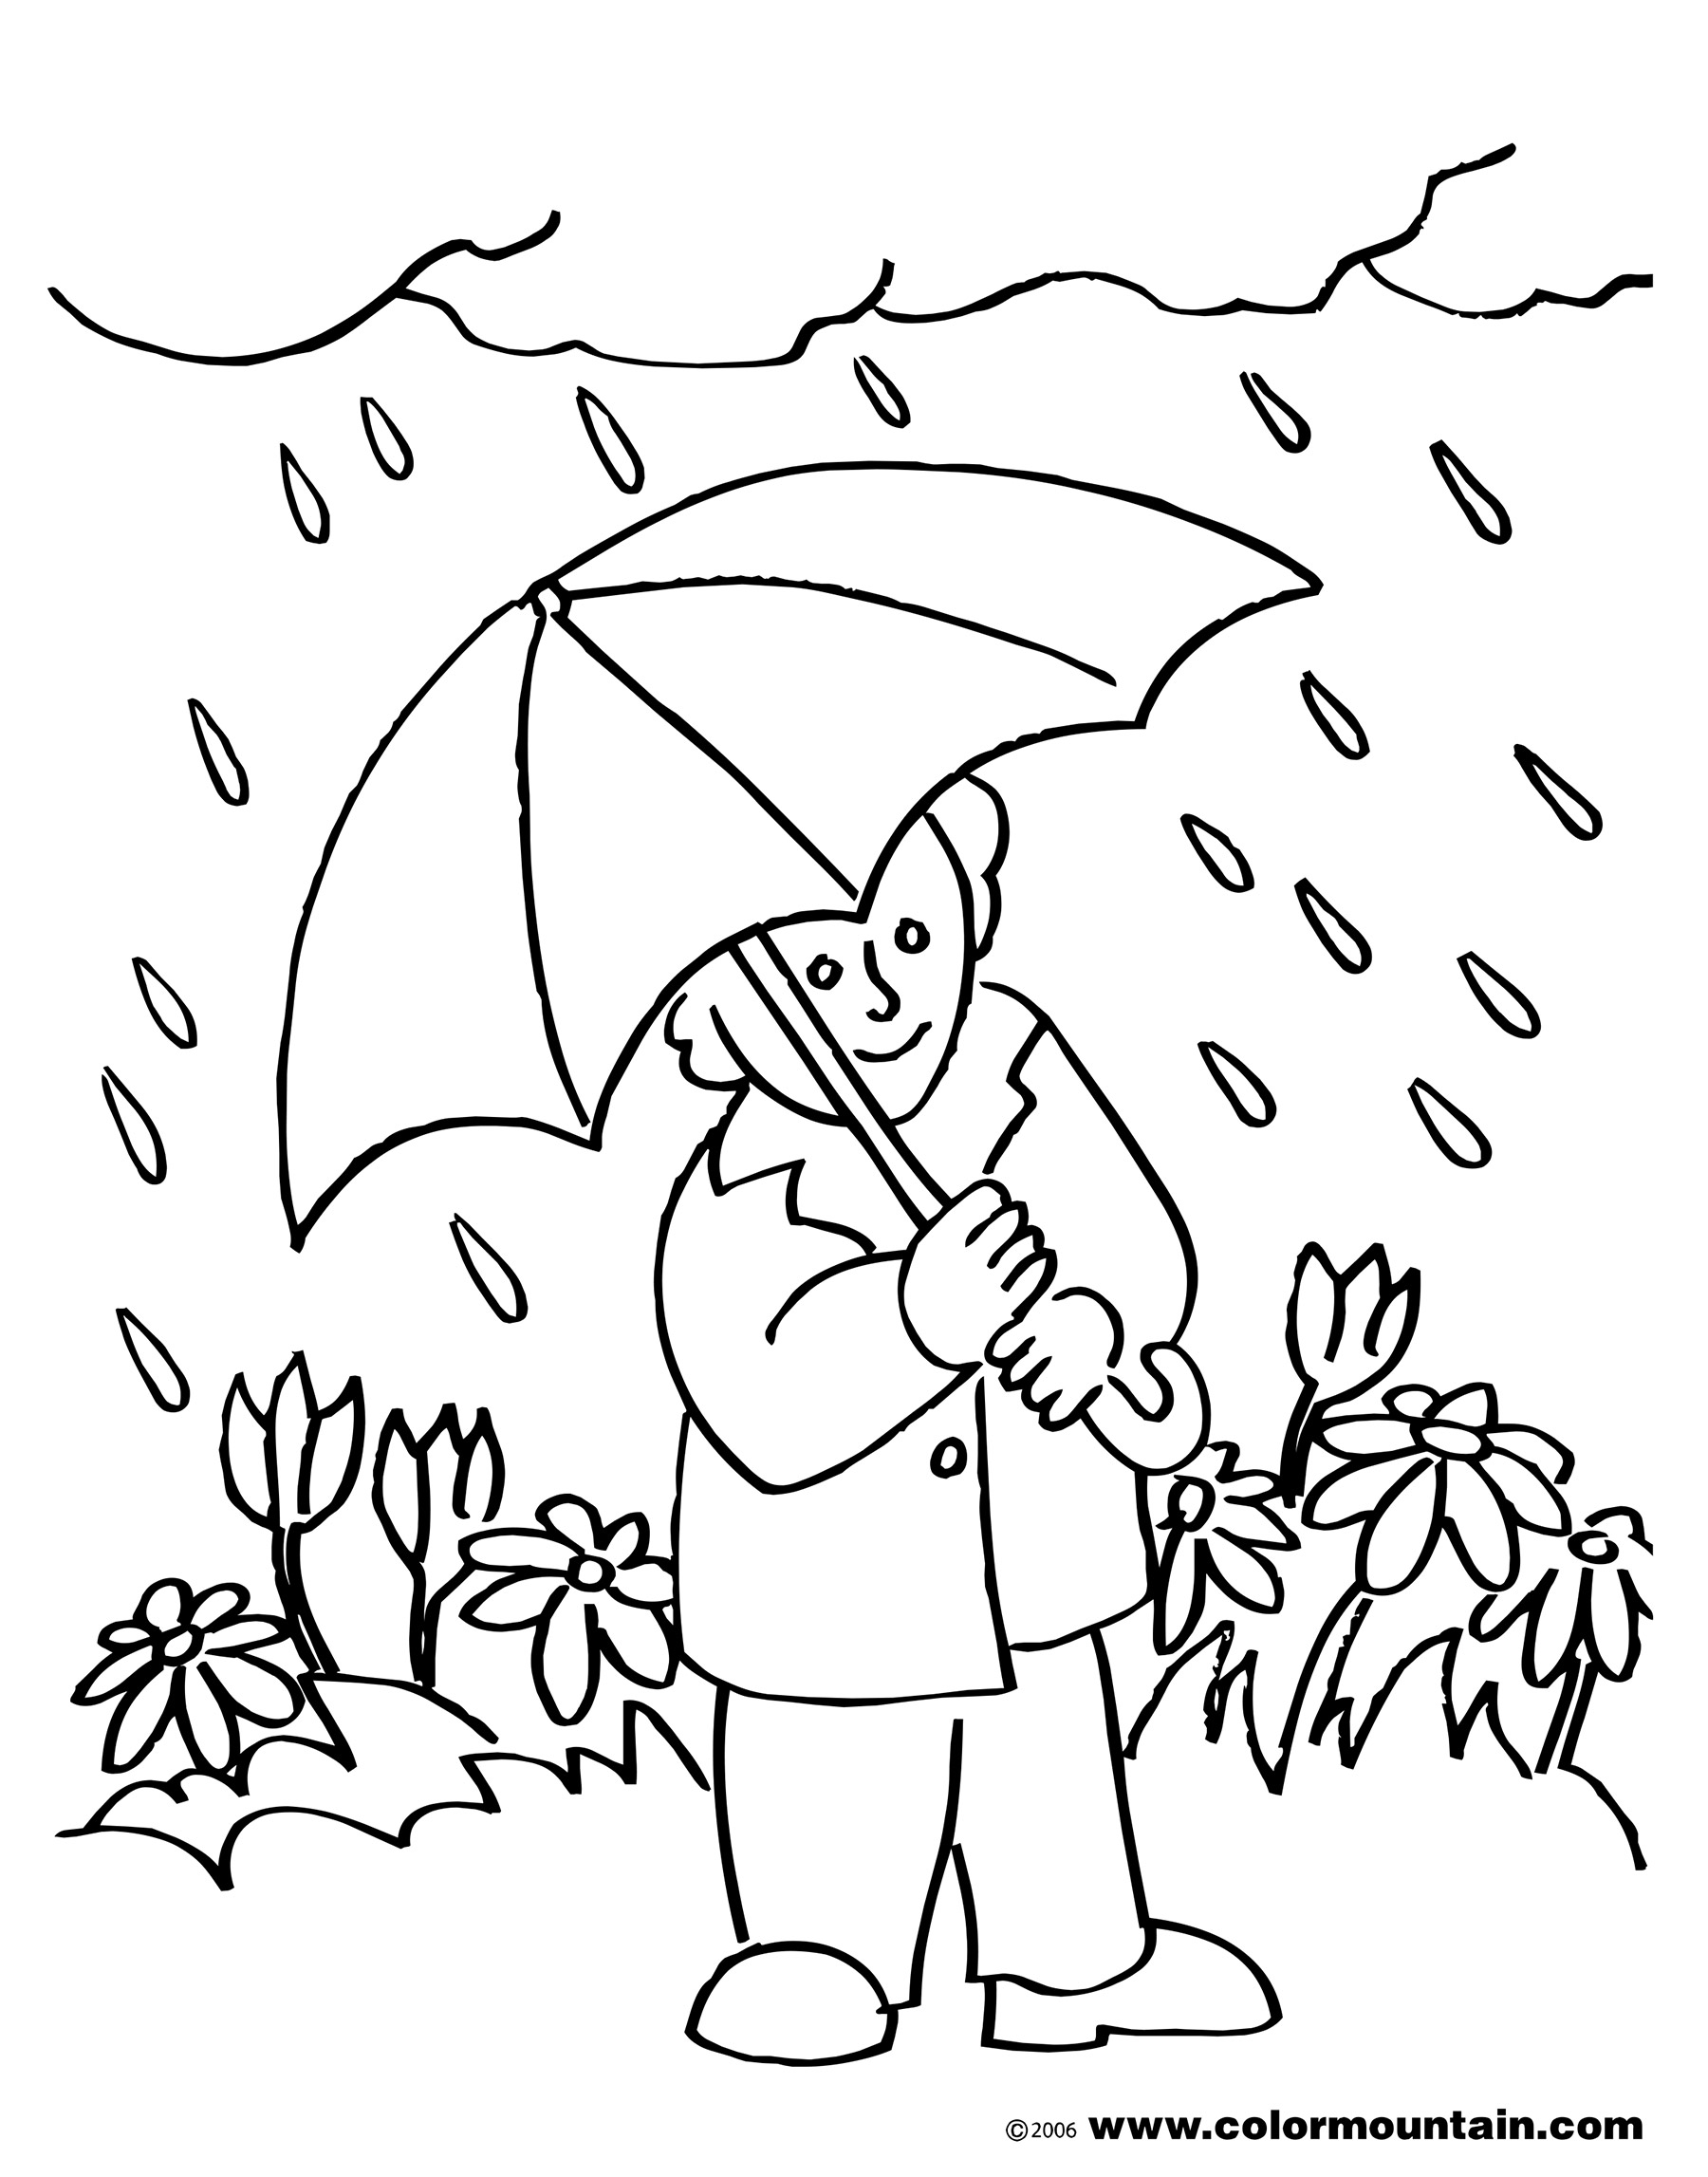 Black and white clipart day png transparent download Rainy day clipart black and white 7 » Clipart Station png transparent download